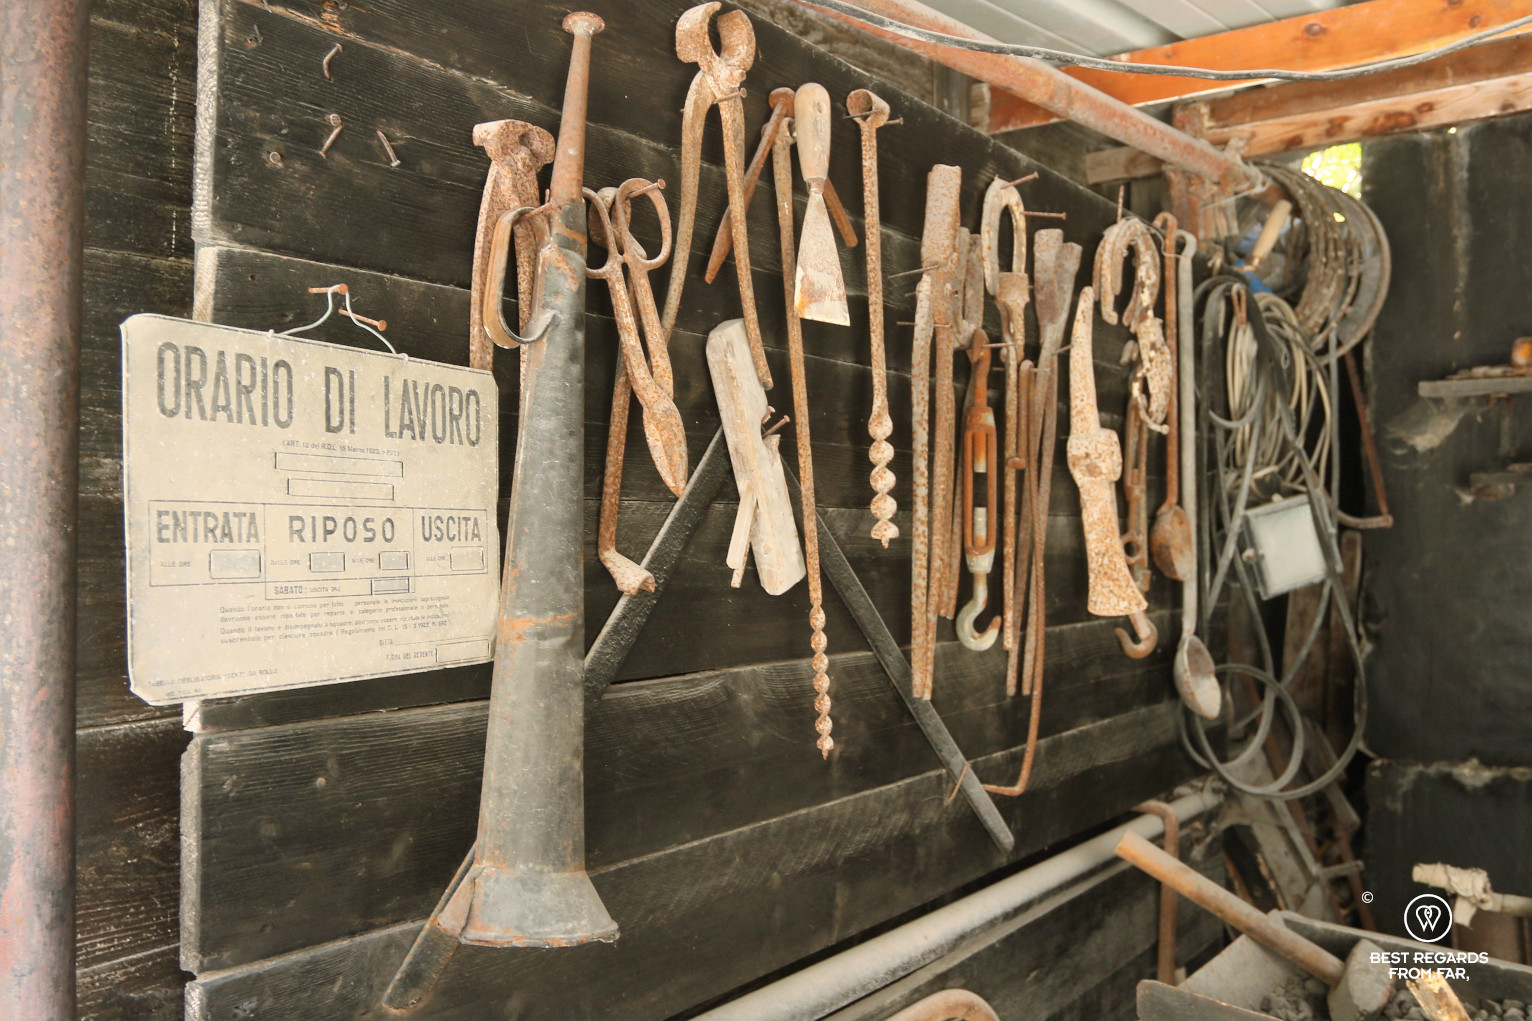 Old working tools of the Carrara marble quarries, Italy